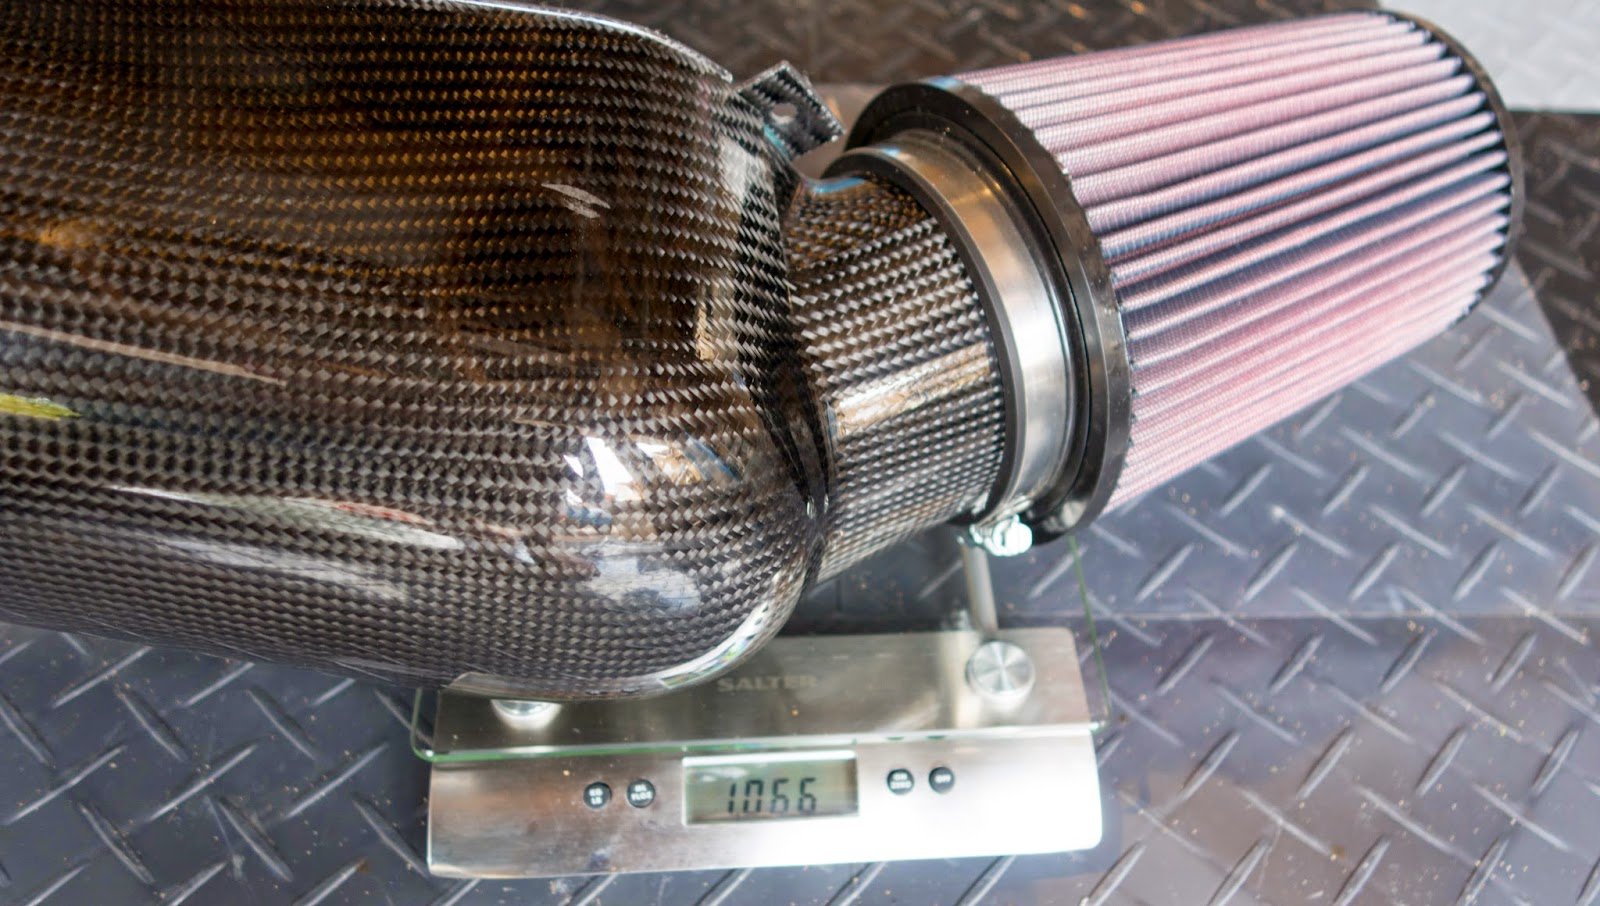 Caterham Carbon Track Day Airbox - weighs 1.06kg